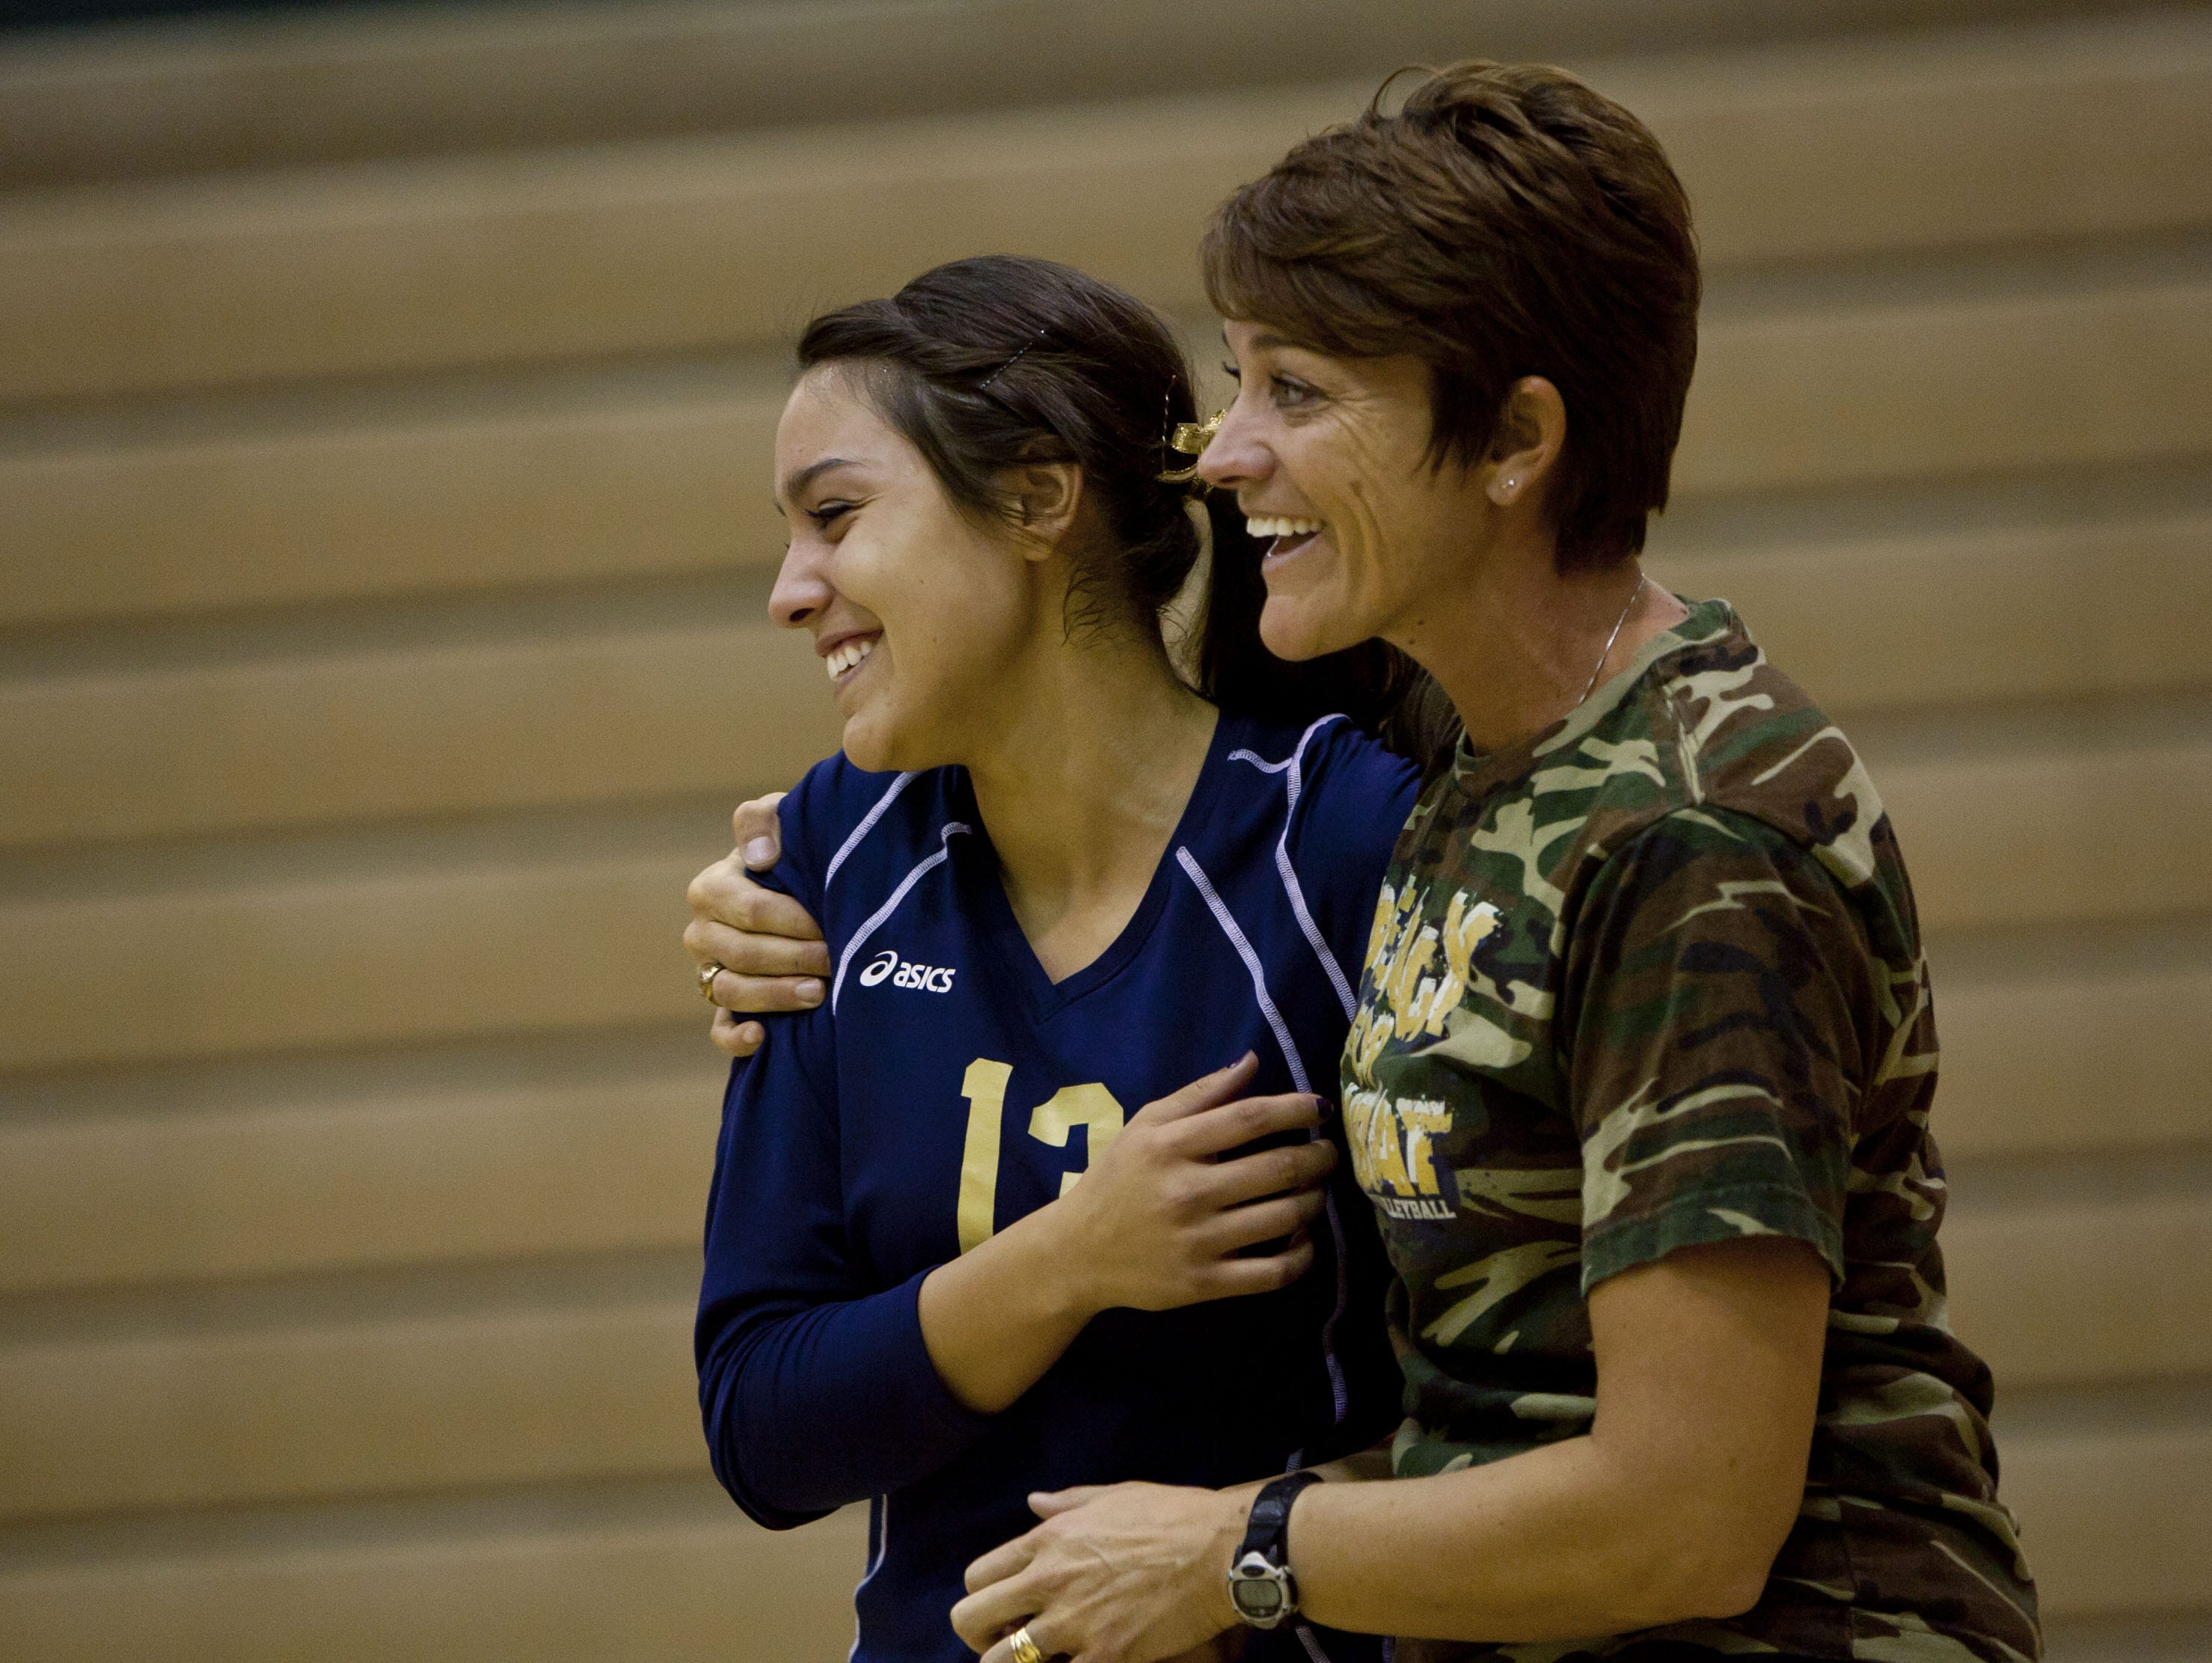 Snow Canyon volleyball senior and coach Ciara and Alaina Parker walk onto the court during senior night for the Warriors' final Region 9 match Thursday, Oct. 20, 2011.